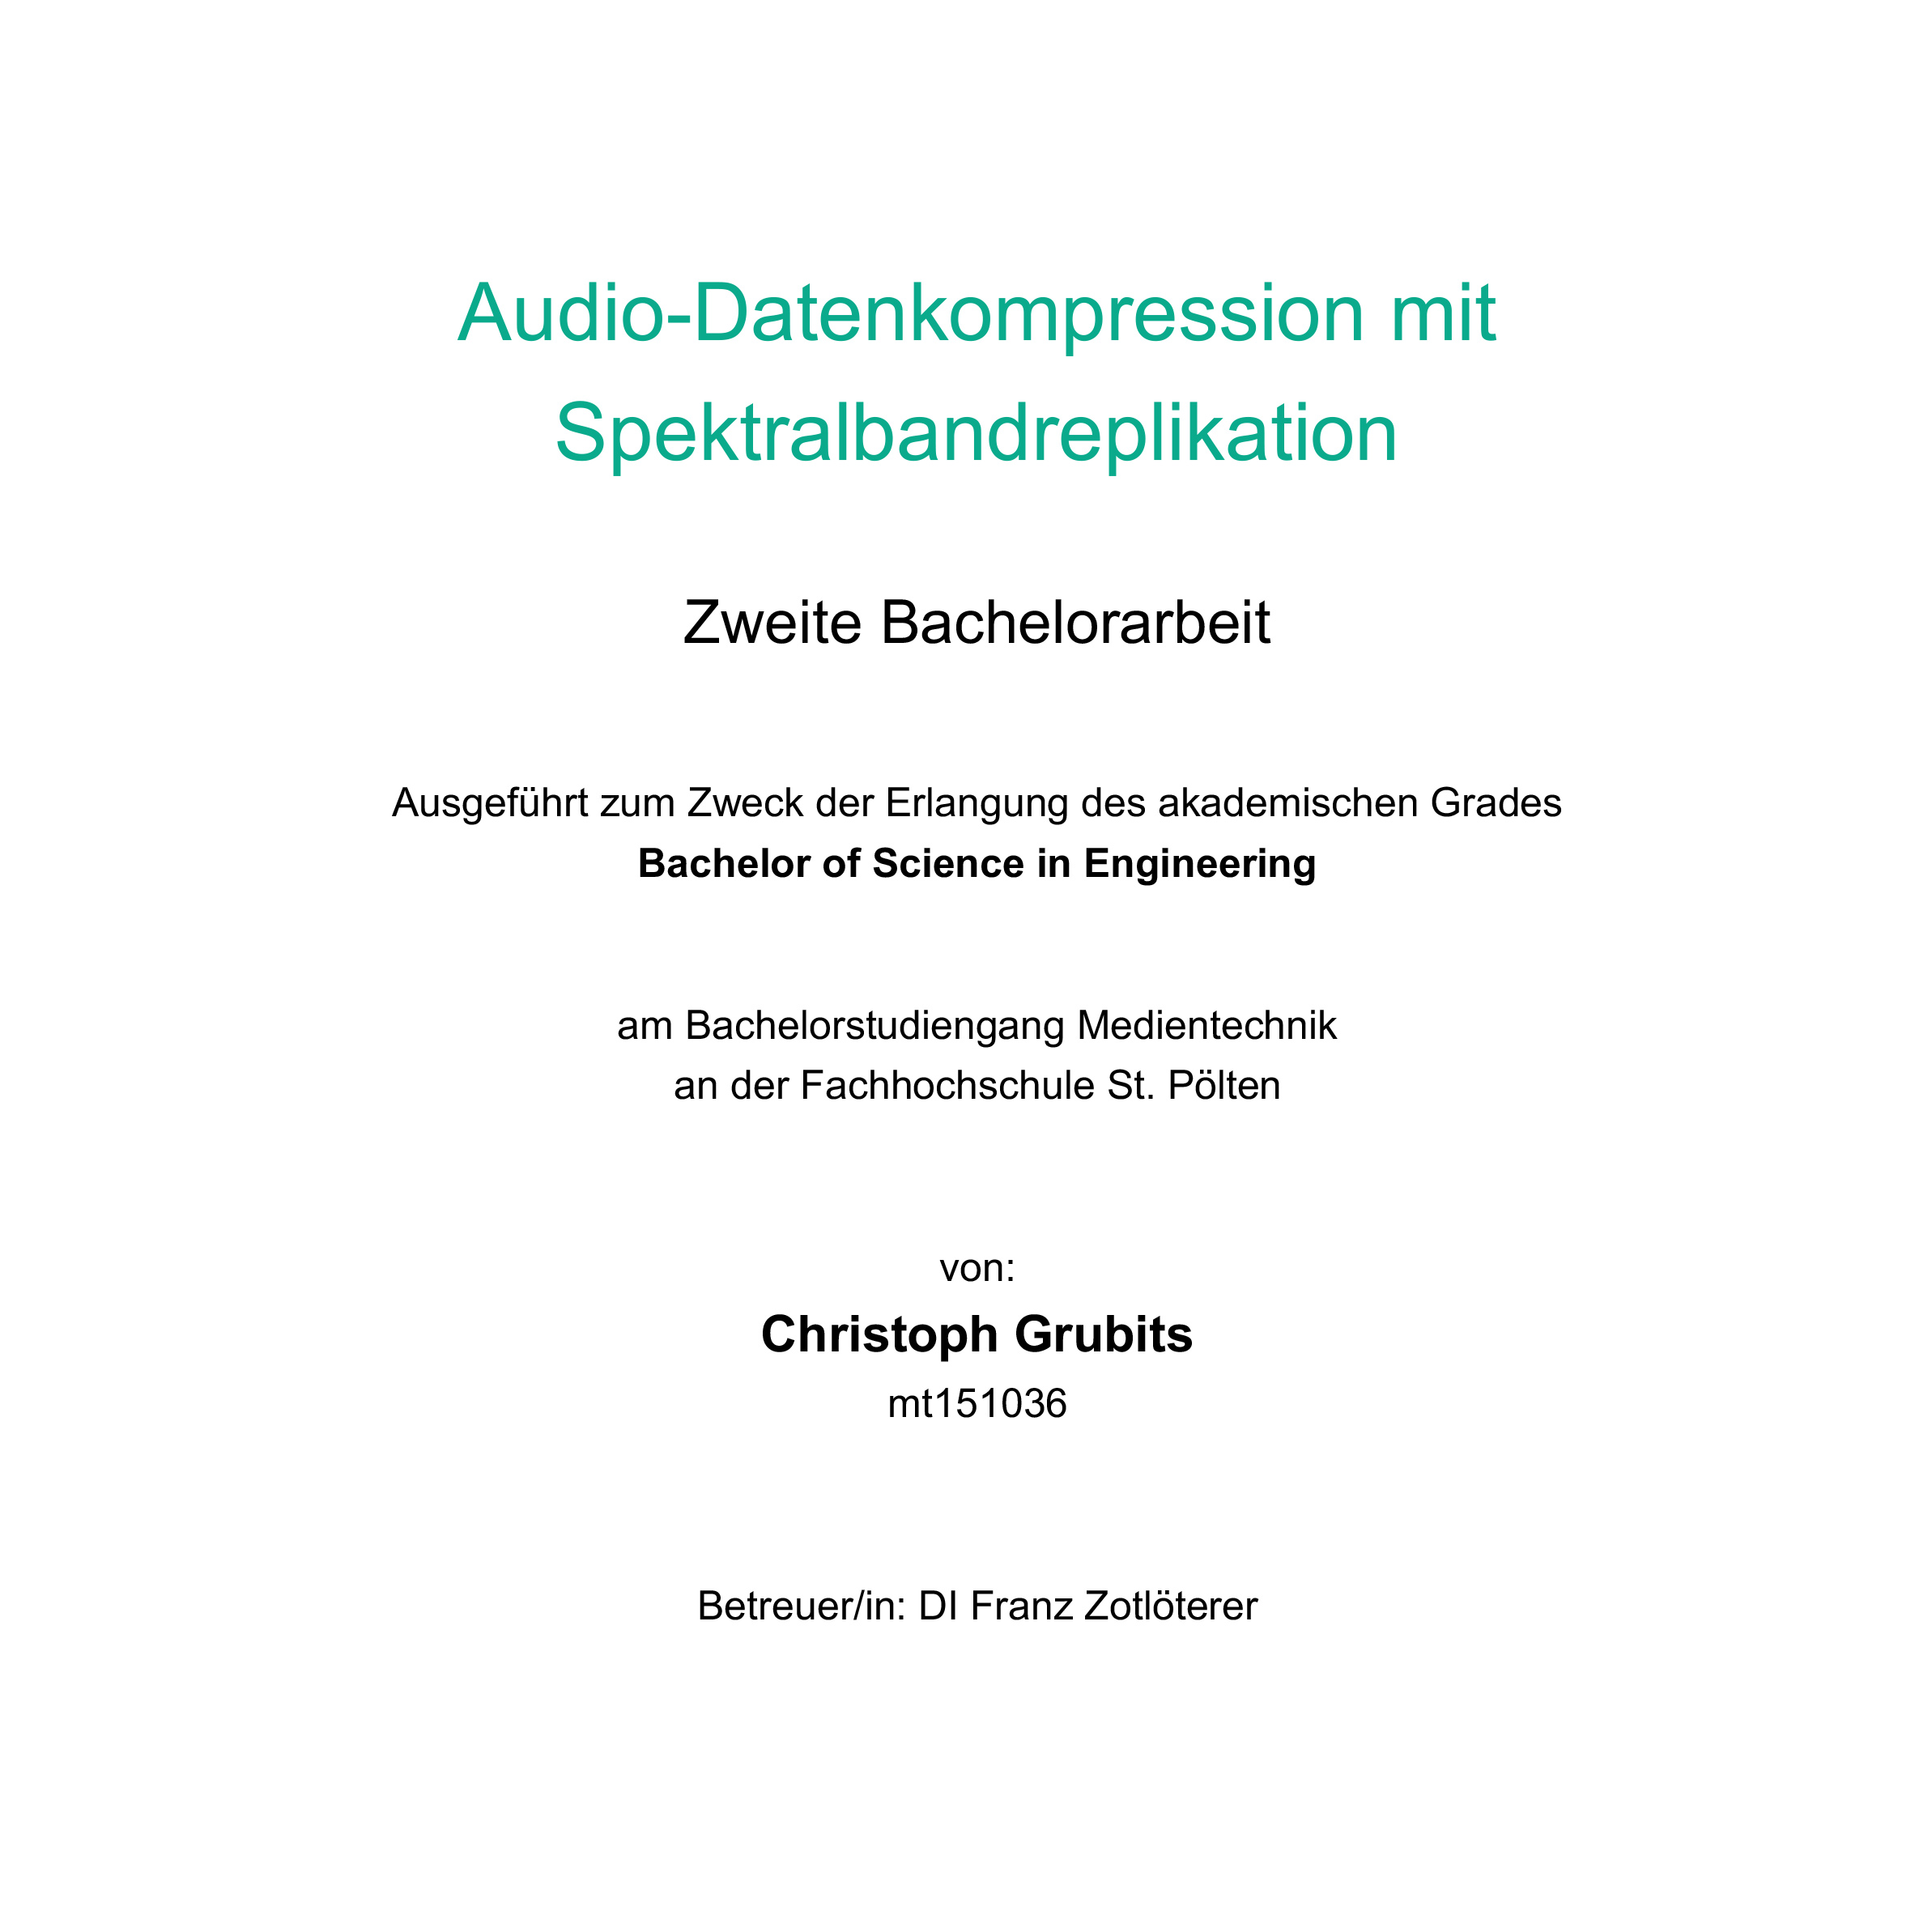 Bachelorarbeit 2: Audio-Datenkompression mit Spektralbandreplikation